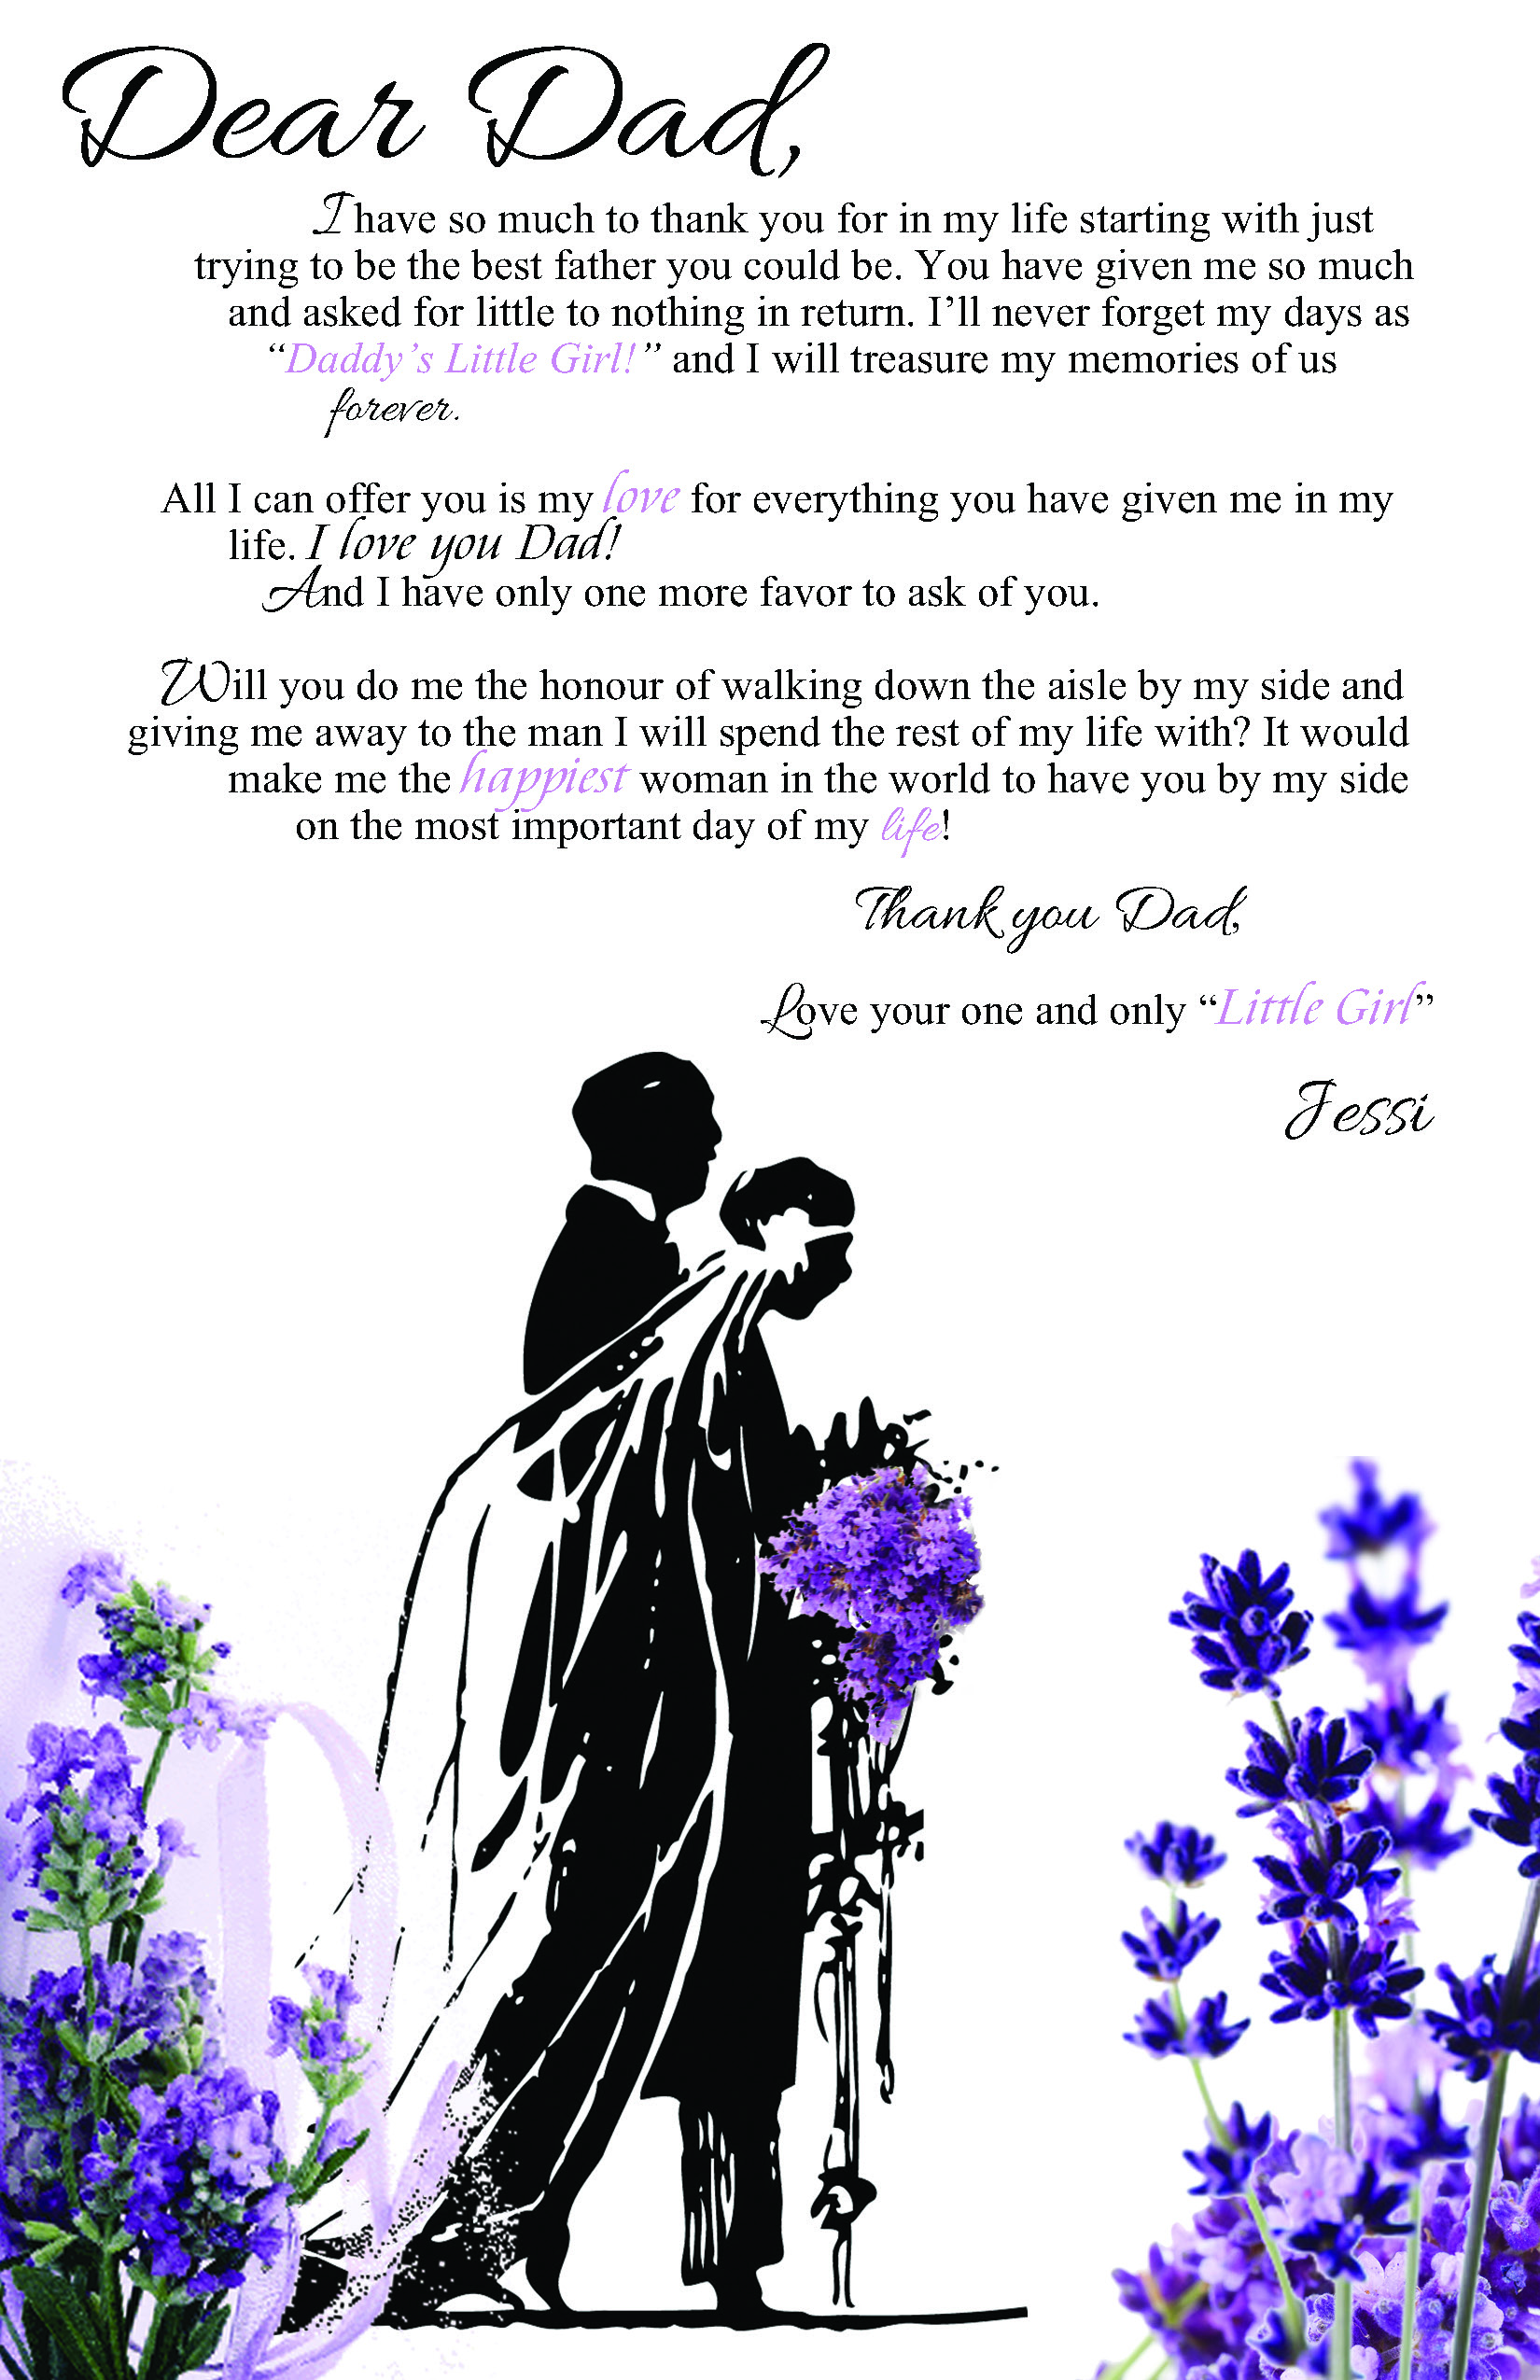 Dear Dad (Letter to Father of the Bride).